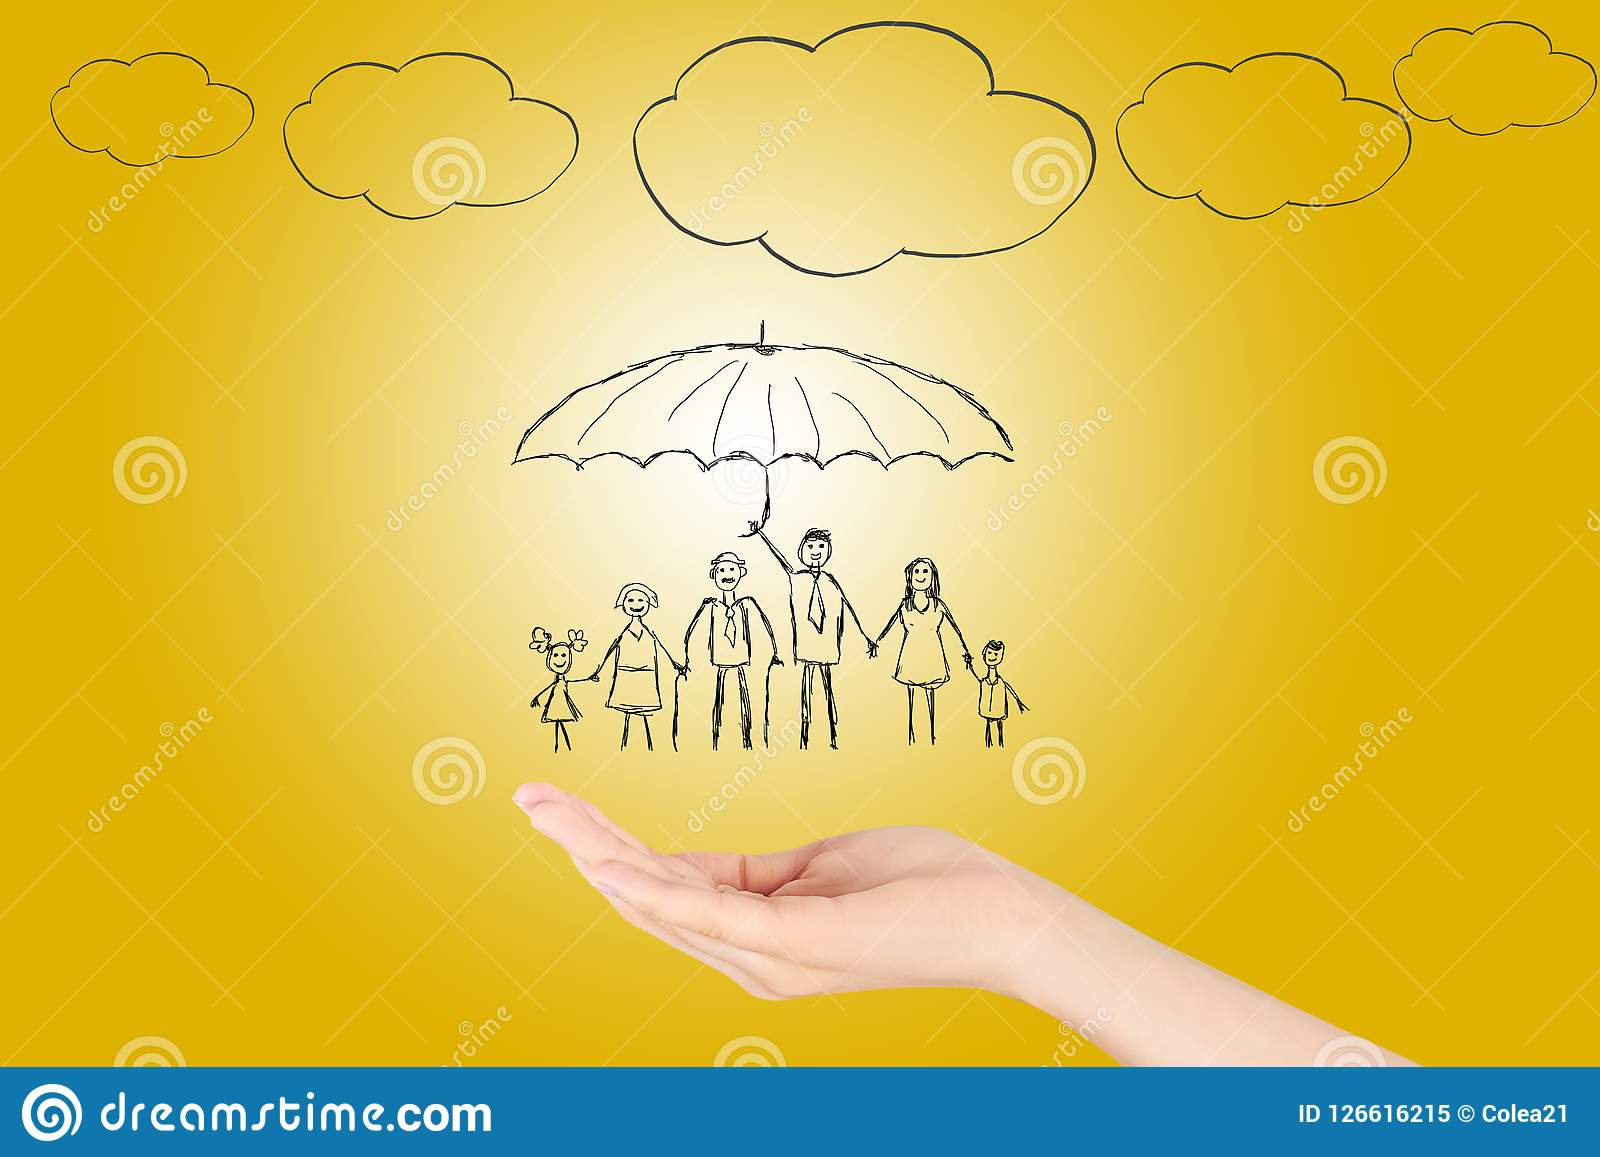 Family life insurance, protecting family, family concepts.